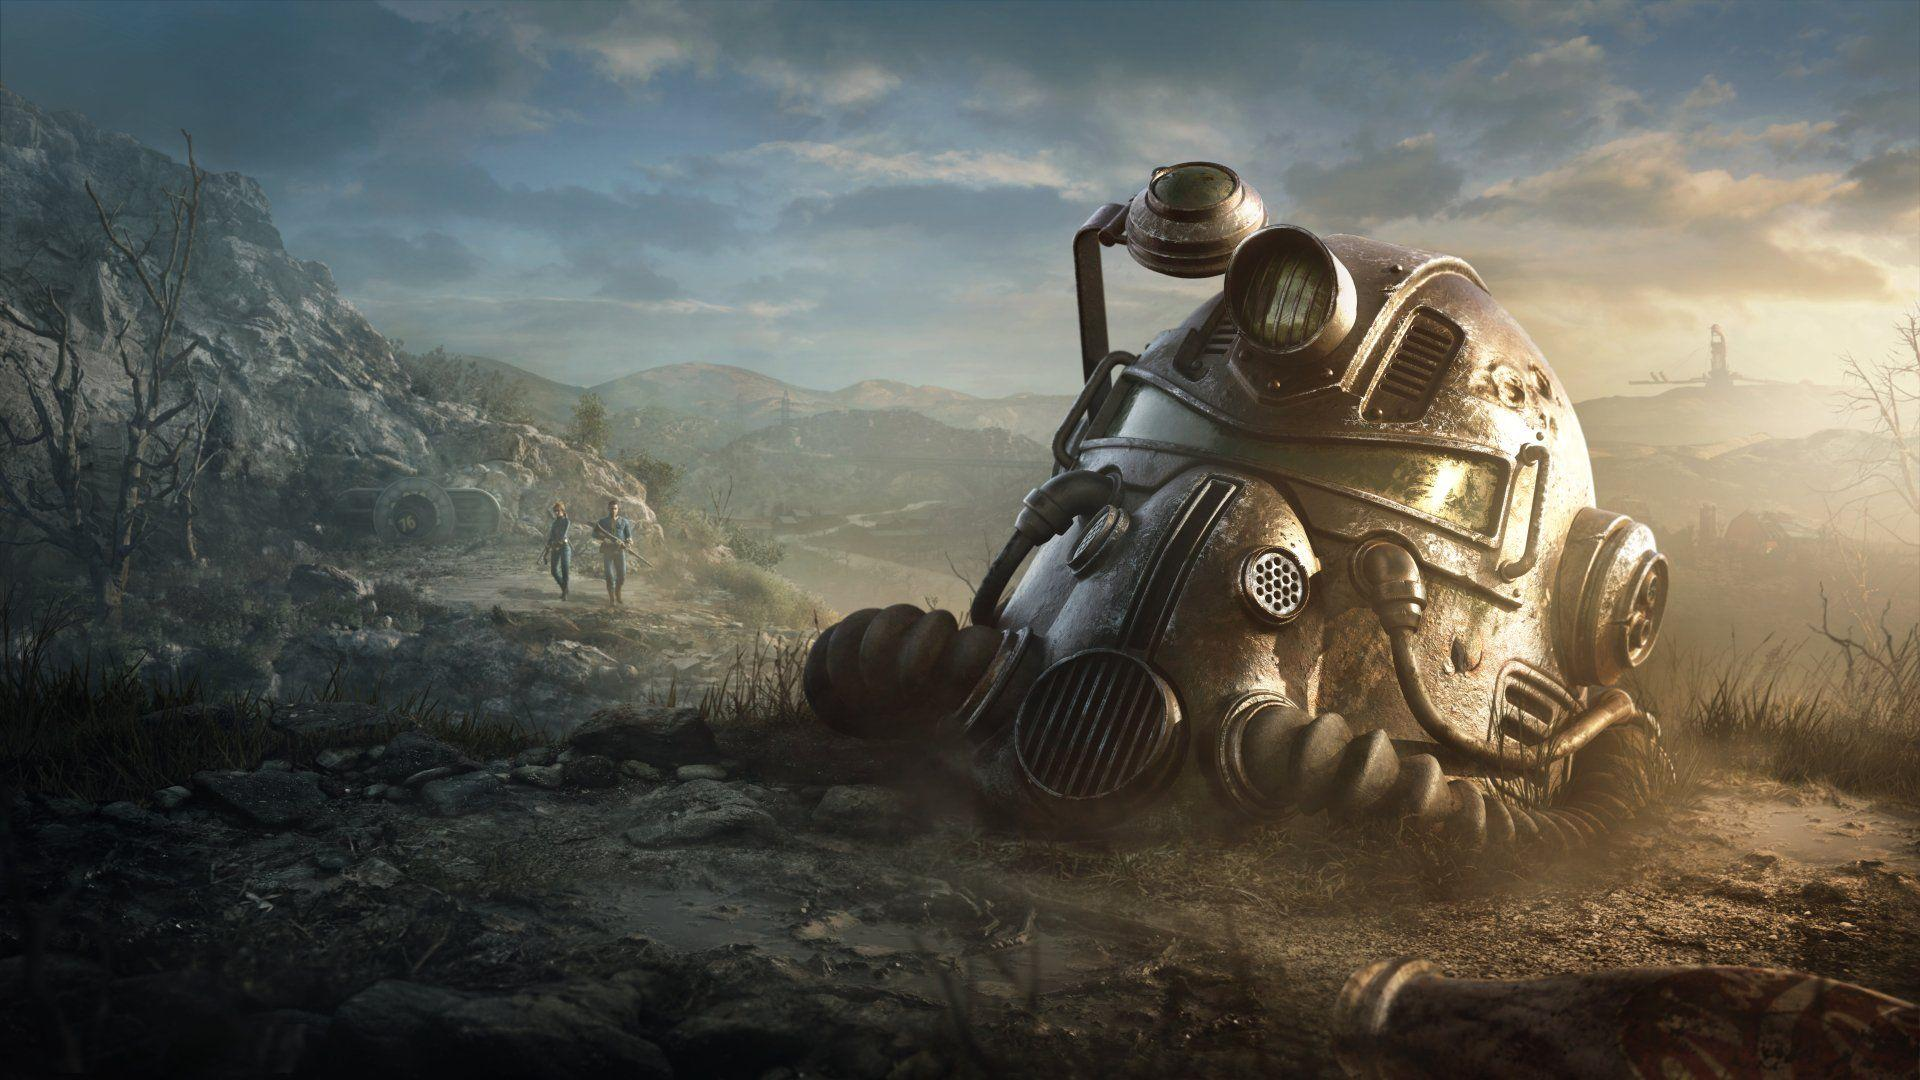 Fallout 76 Hd Wallpapers Wallpaper Cave